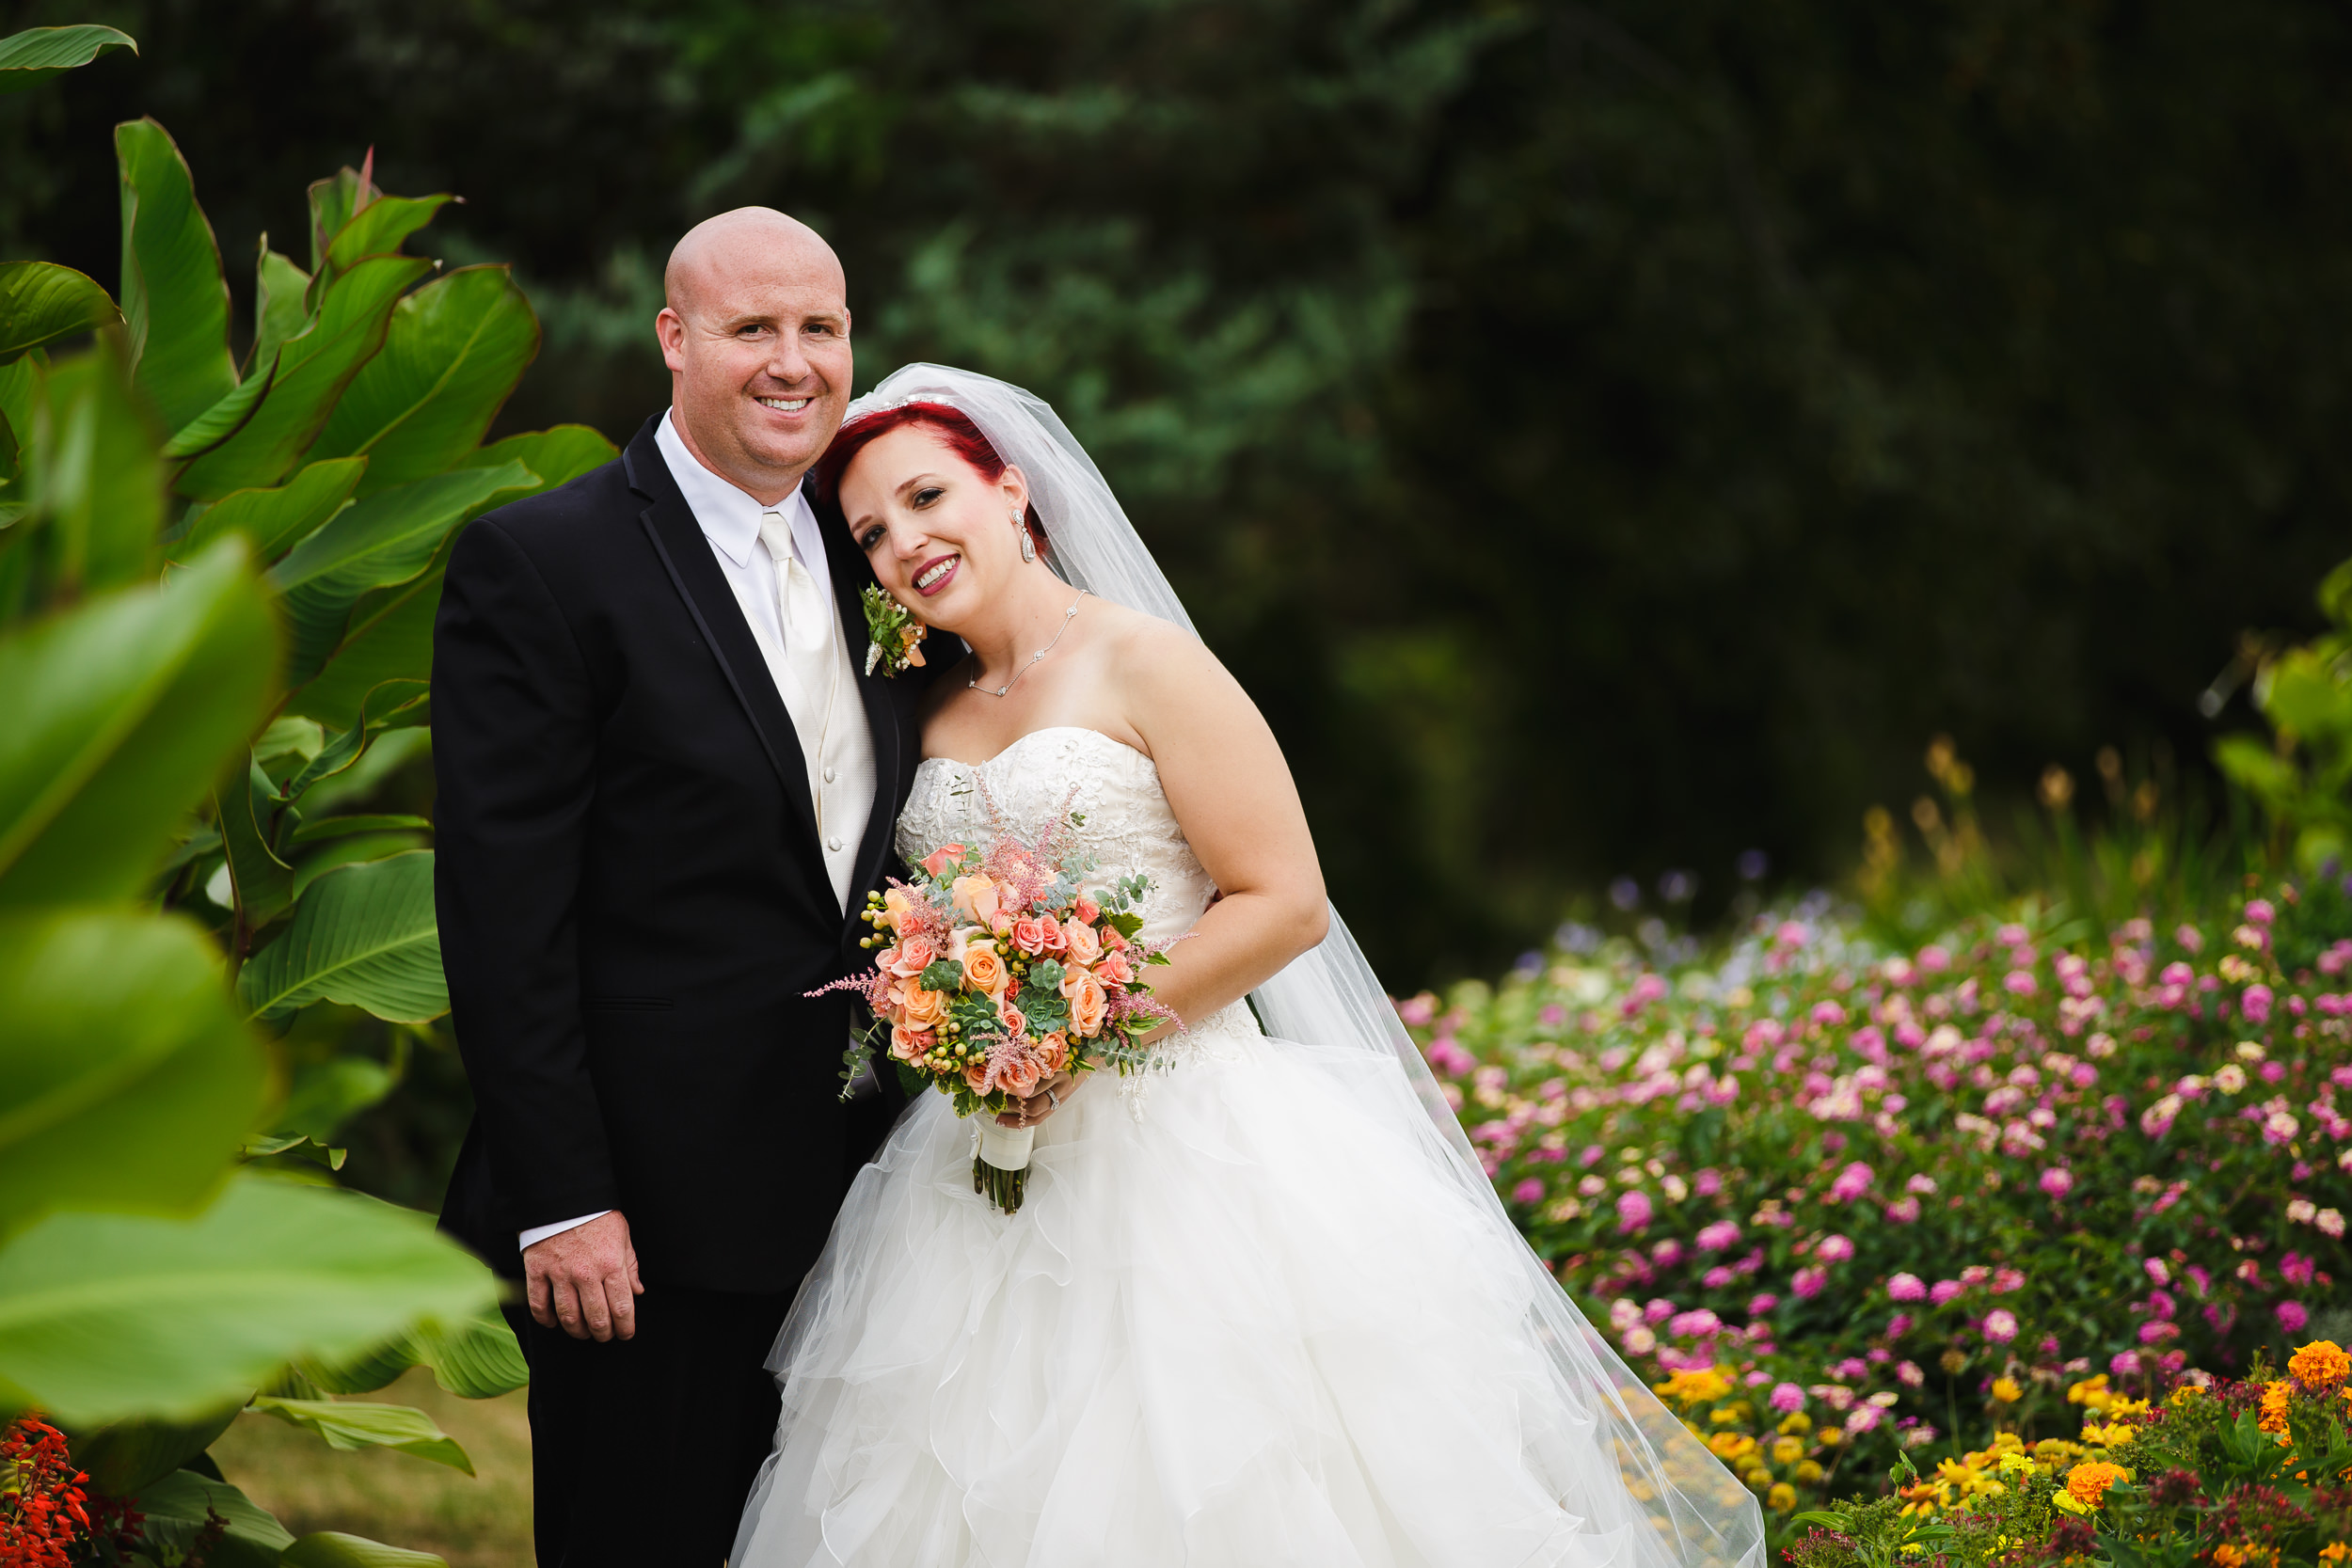 wedding portrait bride groom rutgers gardens new brunswick nj